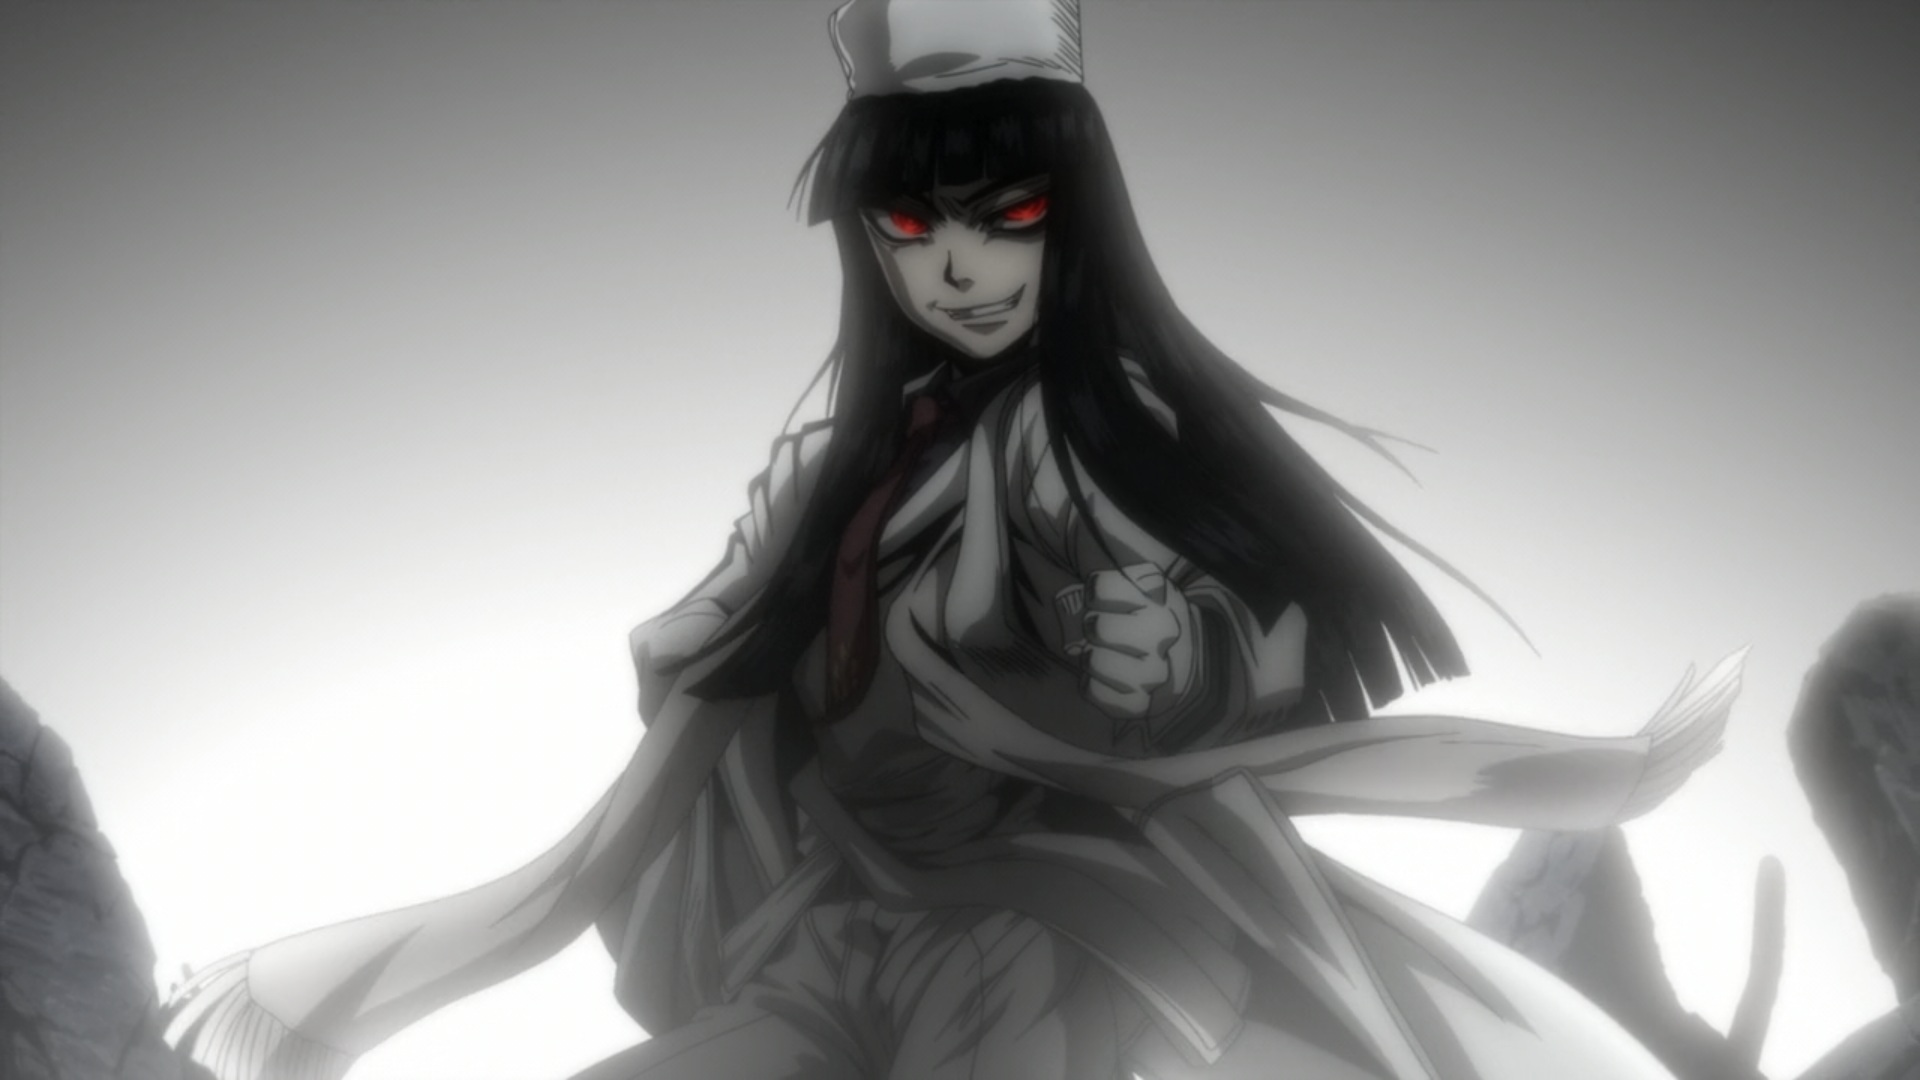 Category:Characters | Hellsing Wiki | FANDOM powered by Wikia